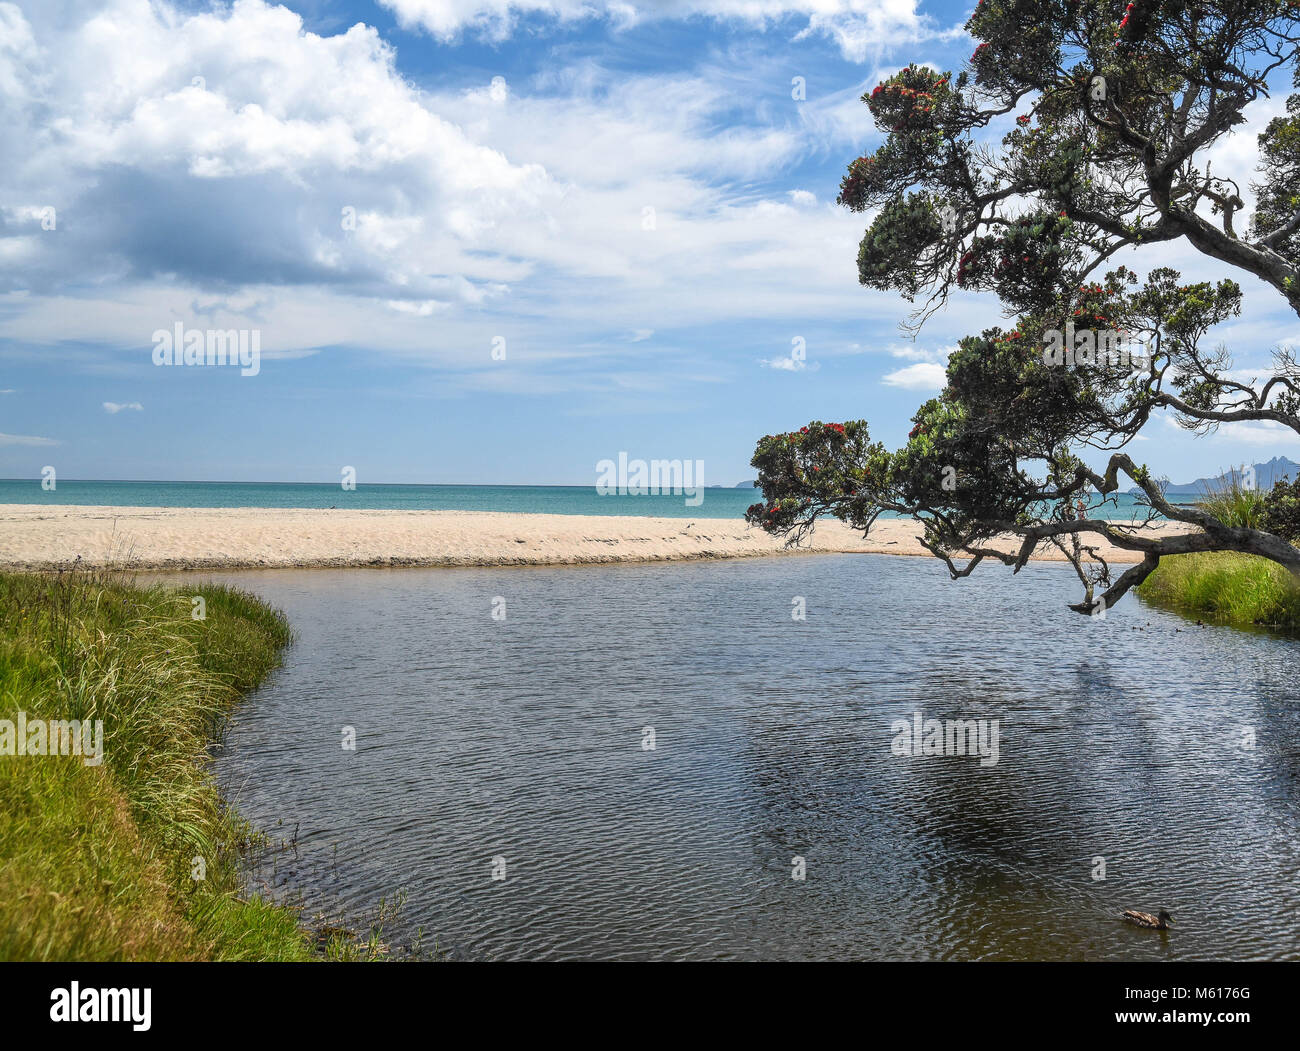 view from the beach at Langs, new zealand - Stock Image